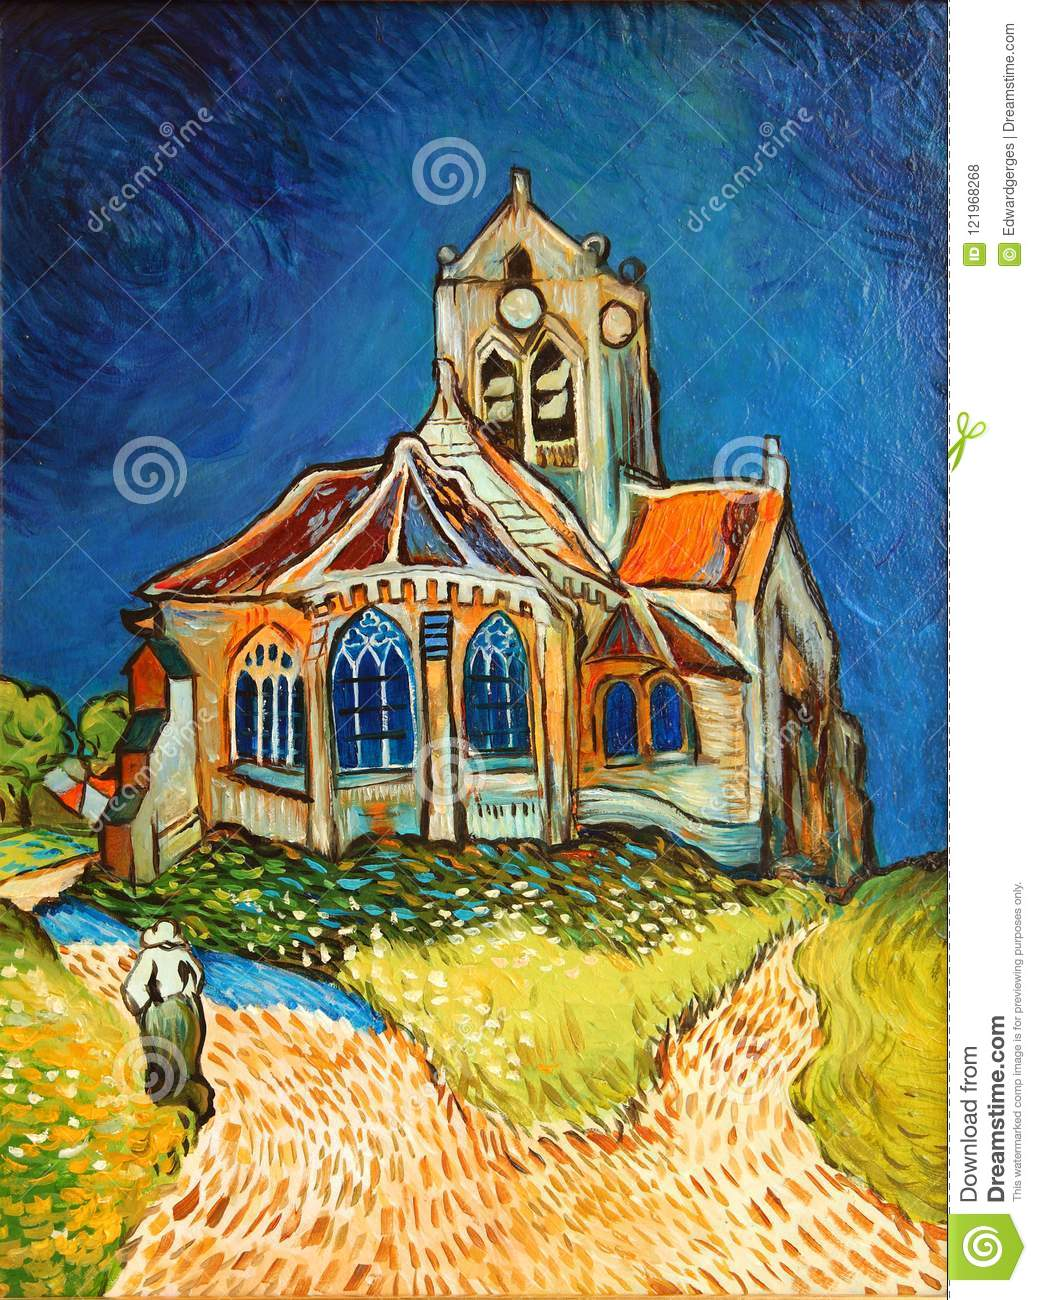 Vang Gogh Cuadros Van Gogh Church Painting Editorial Stock Photo Image Of Painting